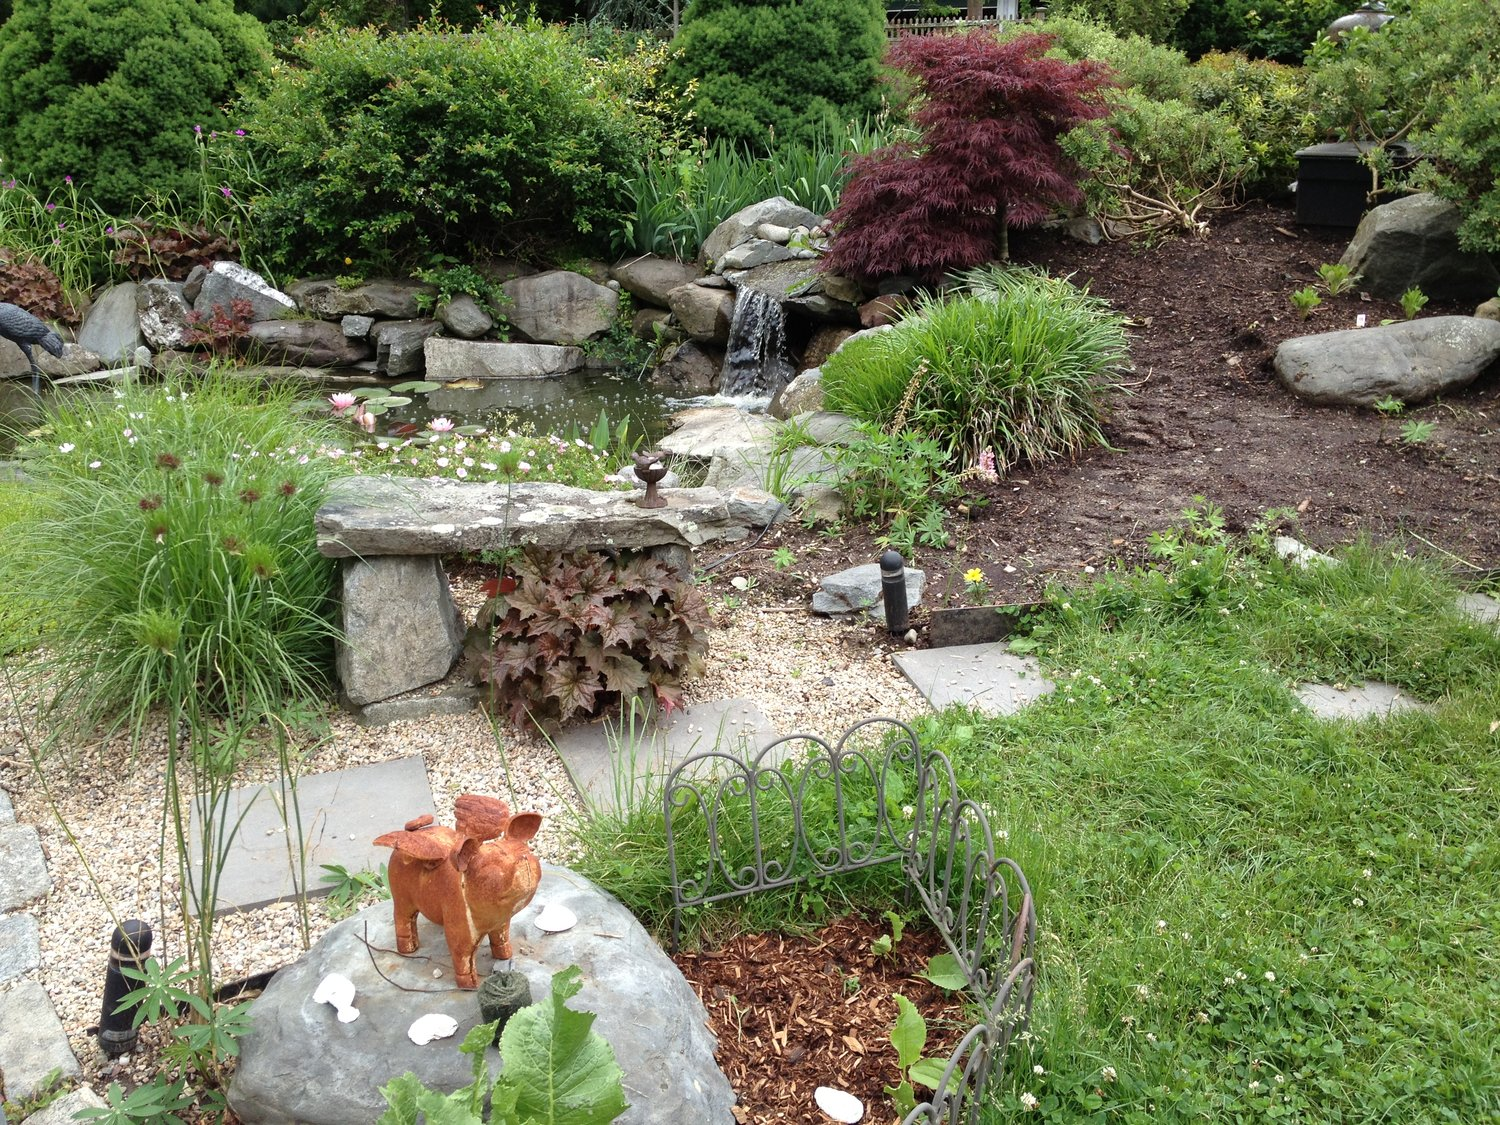 Gardens located at 89 Reed Street, Seekonk, also featured in Seekonk are the gardens at 37 Jane Howland Drive.